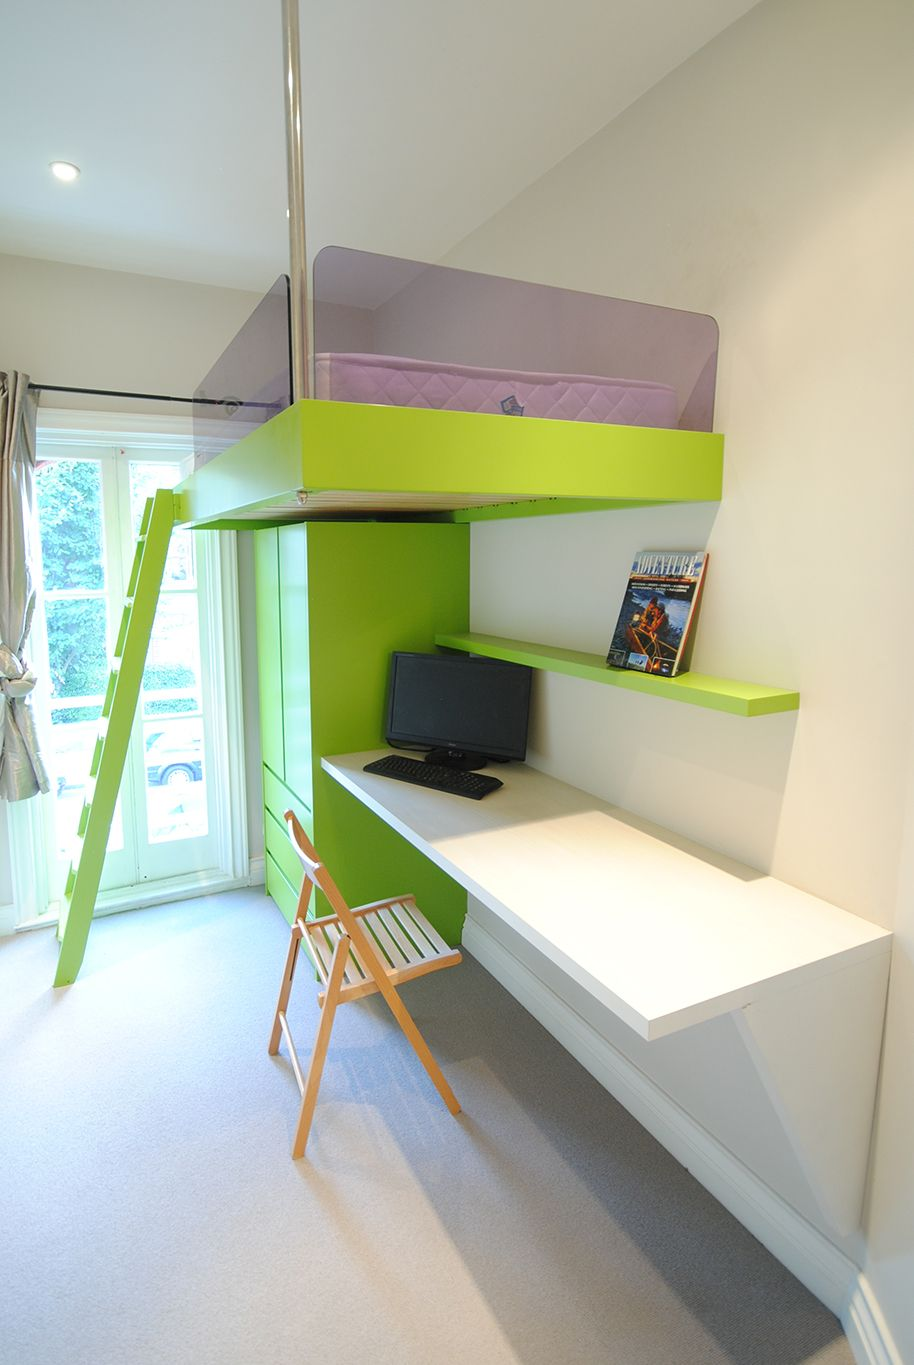 A Bespoke Living Space Solution Designed And Crafted Entirely At Creative Woodwork In London Www Cre Small Kids Room Small Room Design Box Room Bedroom Ideas